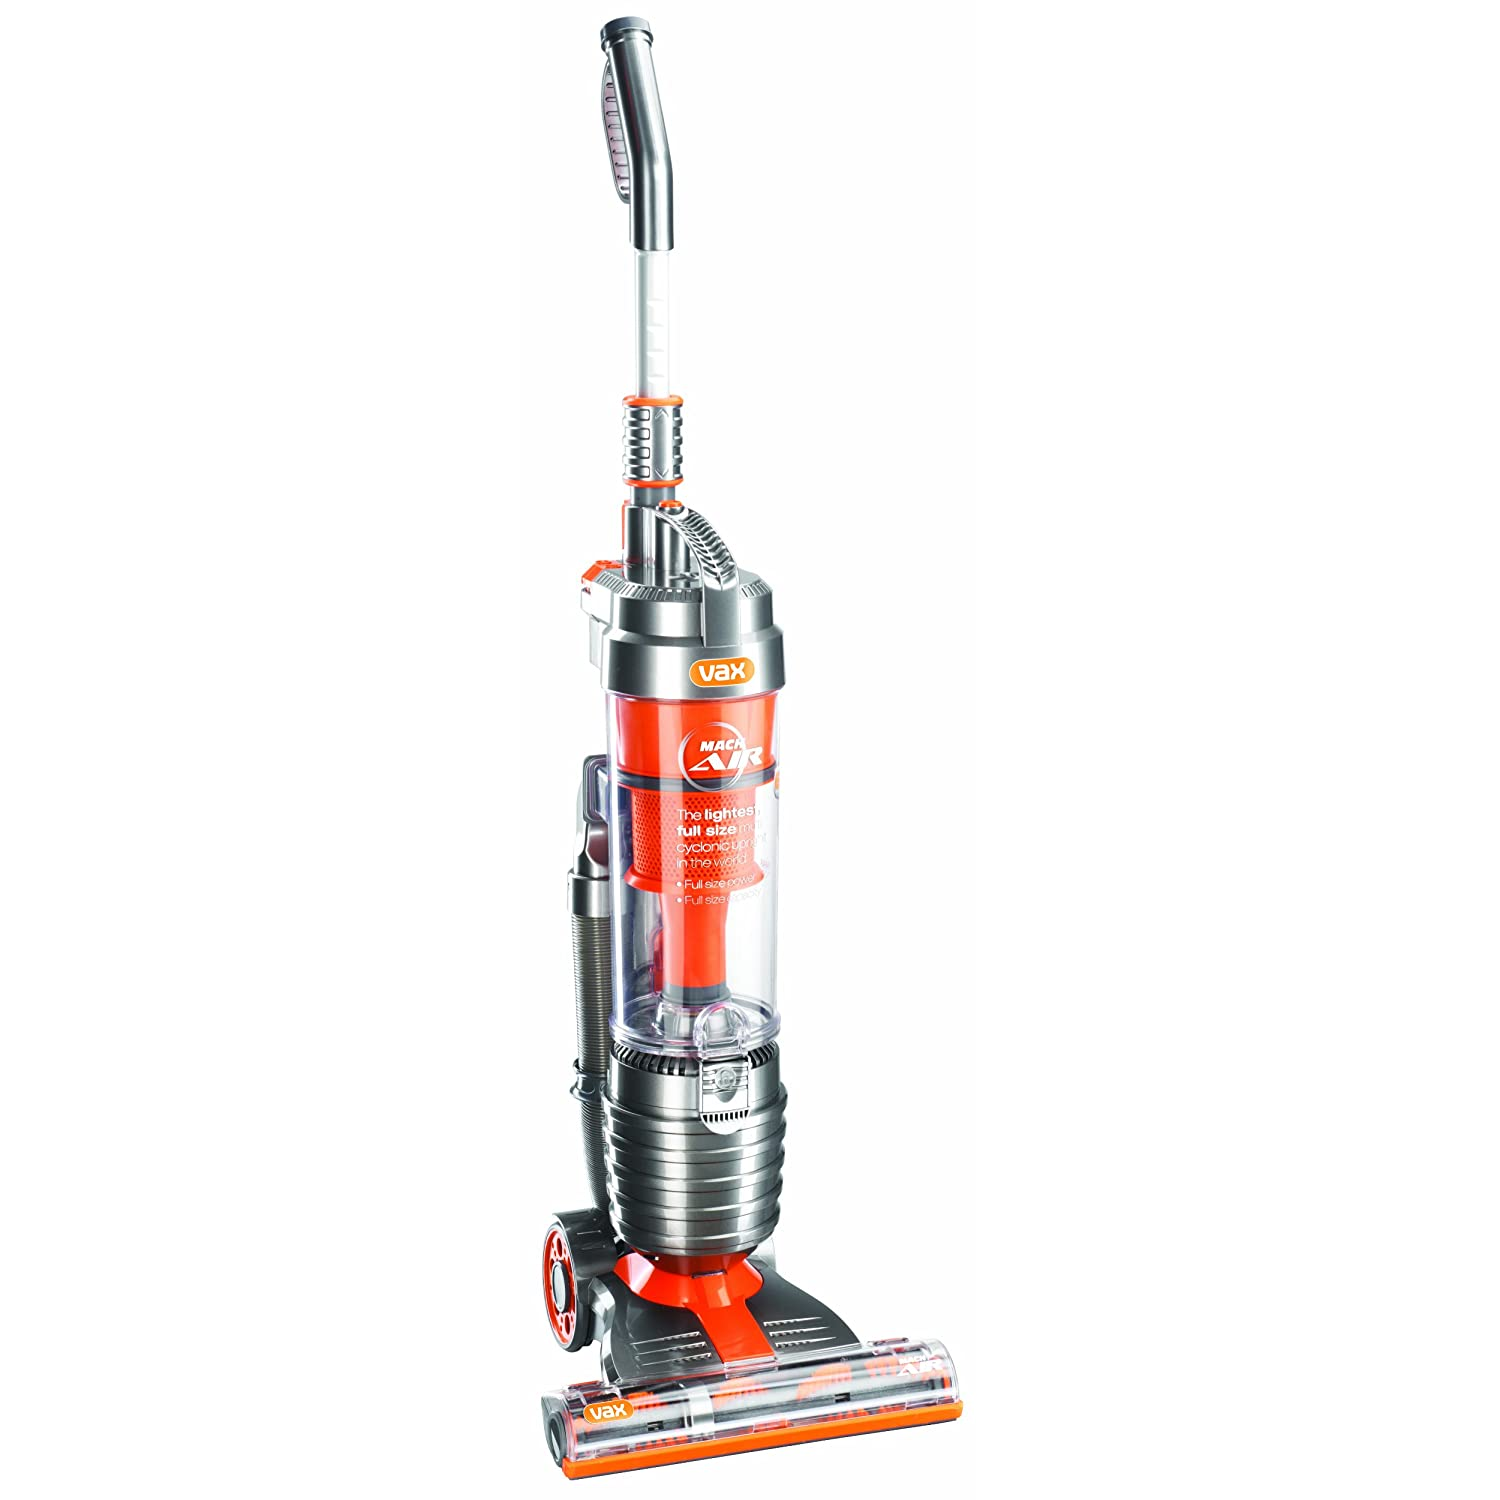 Upright Vax Vacuum